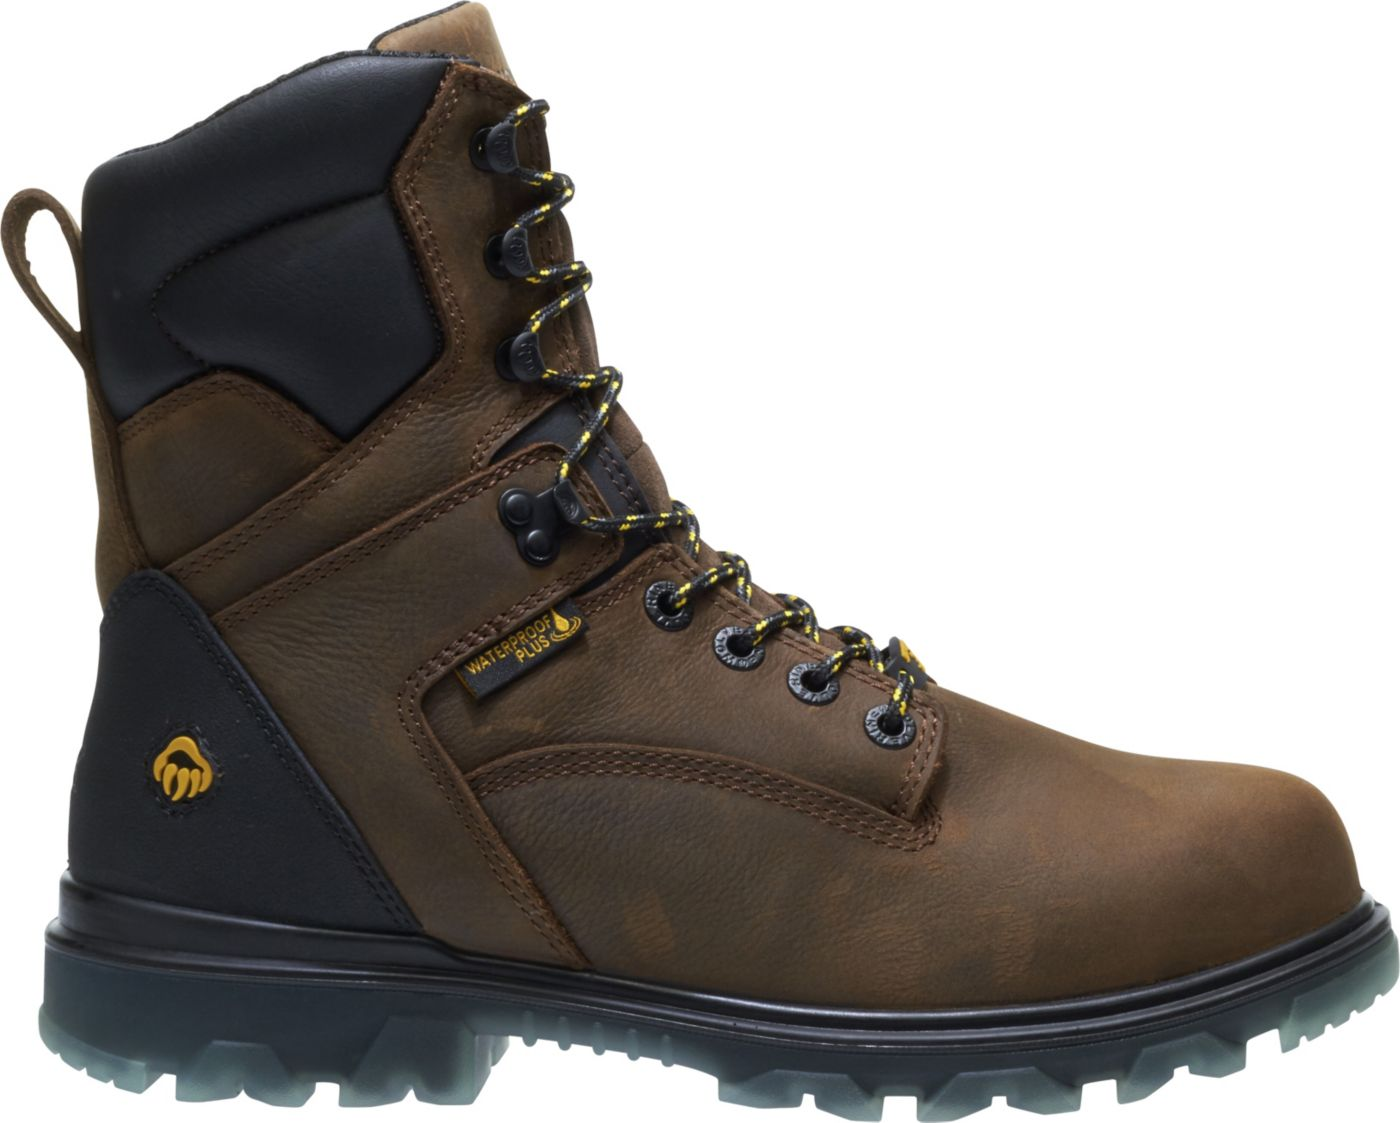 Wolverine Men's I-90 EPX Carbonmax 8'' 400g Waterproof Composite Toe Work Boots